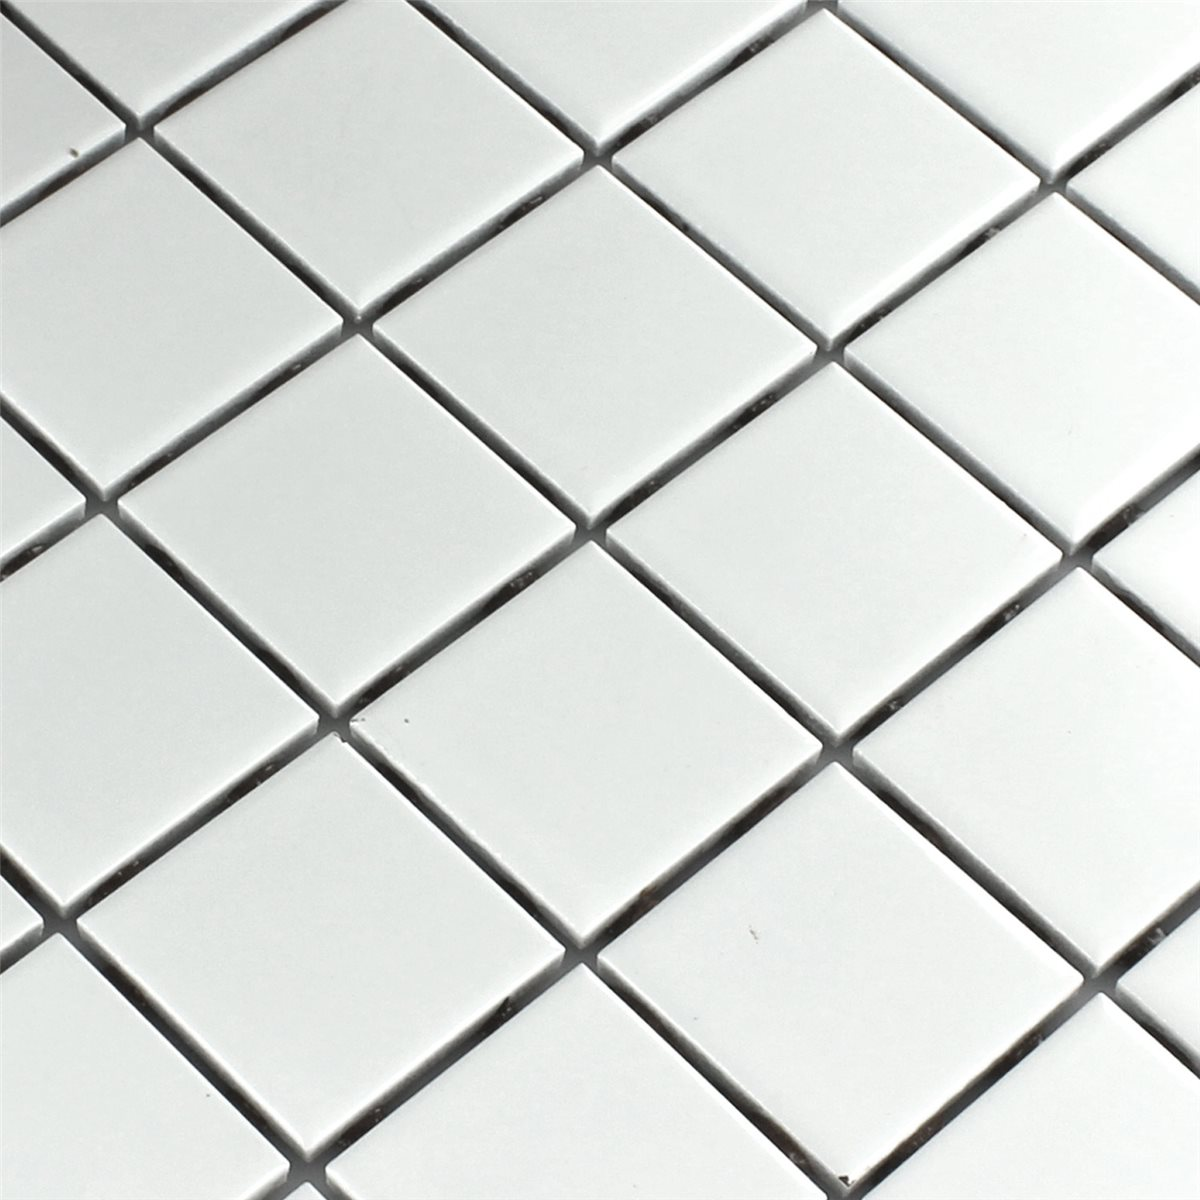 Ceramic mosaic tiles white matt 48x48x6mm ho24163m mosaic tiles ceramic white mat 48x48x6mm dailygadgetfo Gallery